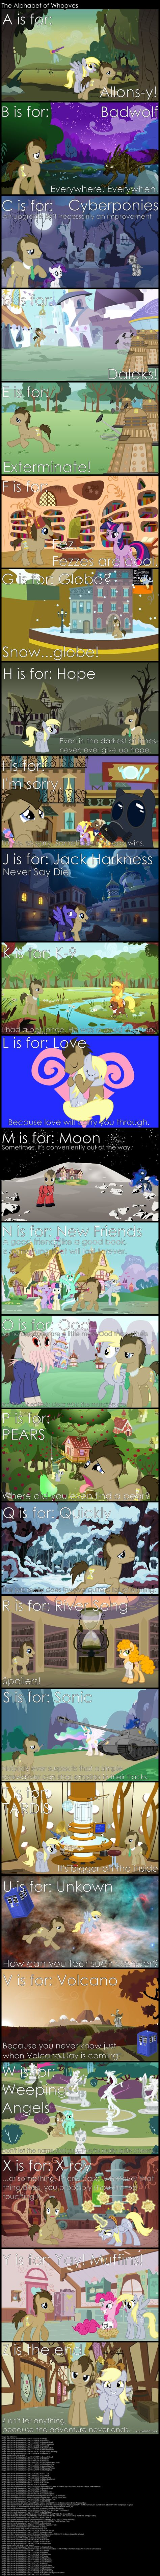 The Alphabet of Whooves (two massive fandoms collide! Got most of them- except the muffins. Wha? Thats a MLP thing, not DW.  ... I cant believe I know that).